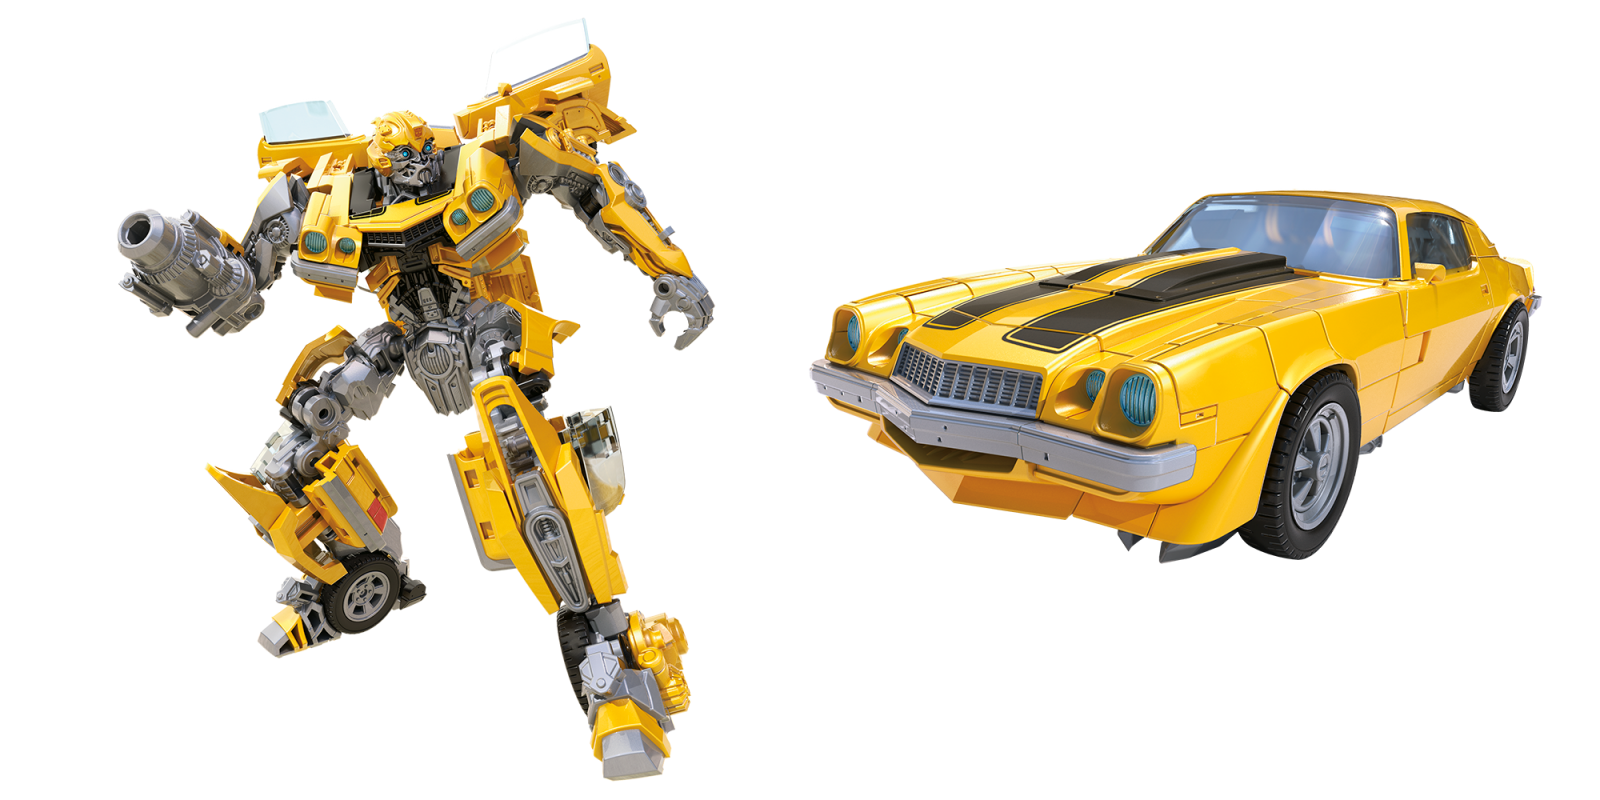 Transformers News: See Now Buy Now: Transformers Studio Series Line Available to Order Now #HasbroToyFair #NYTF